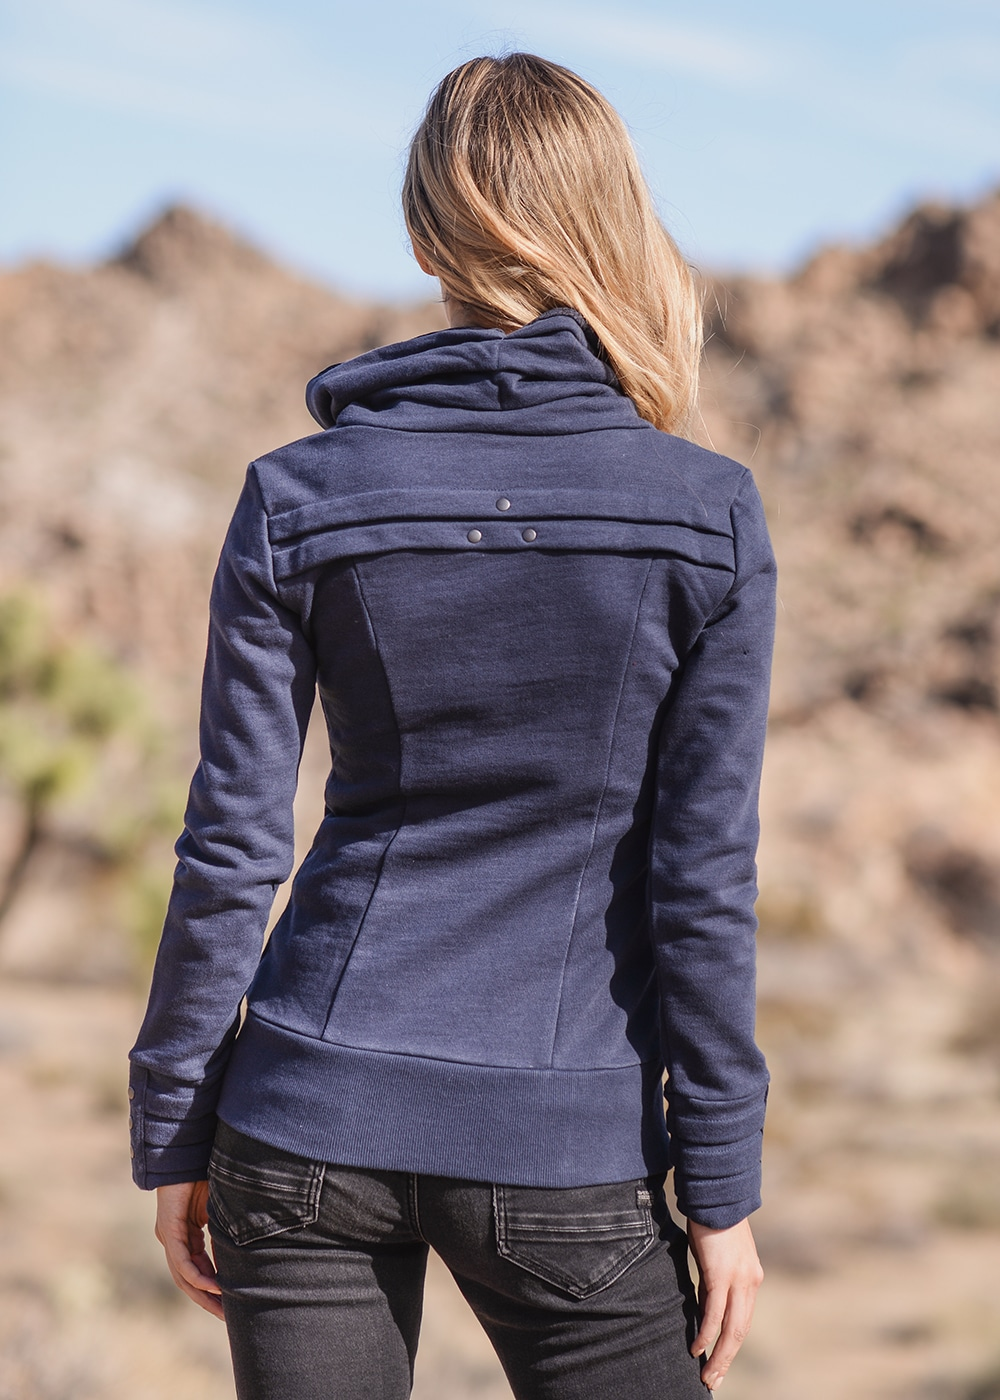 Bamboo and Organic Cotton Skyline Jacket in Blue by Nomads Hemp Wear Back